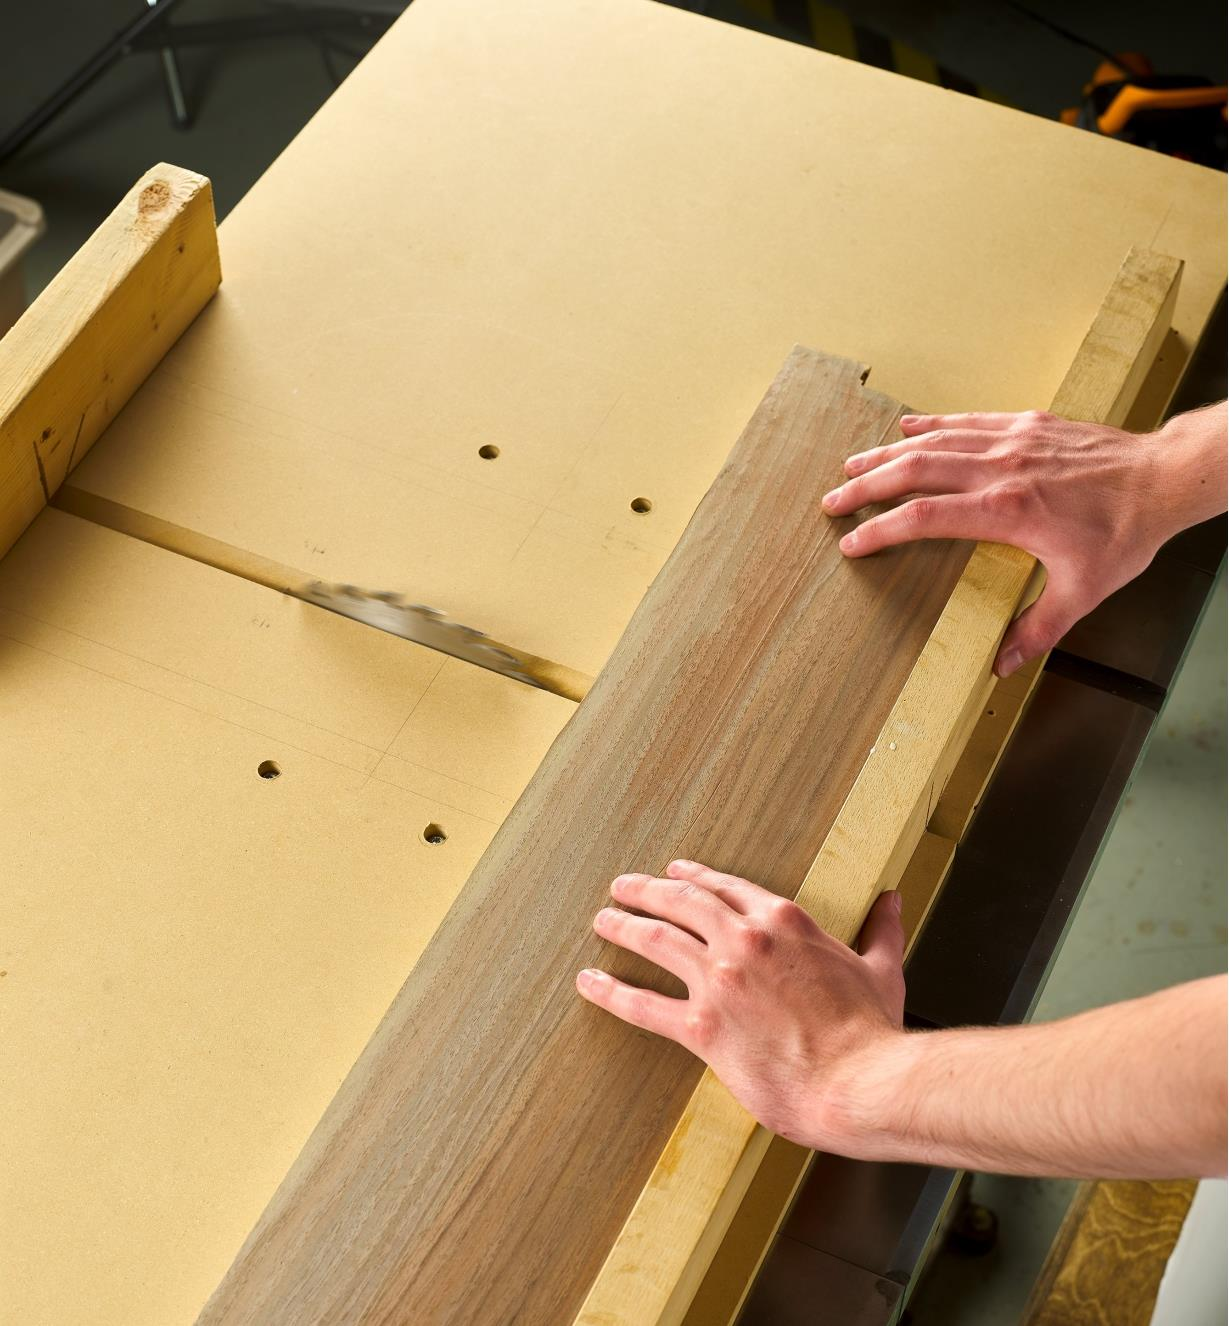 Cutting stock on a table saw using a sled made with two Zeroplay miter bars